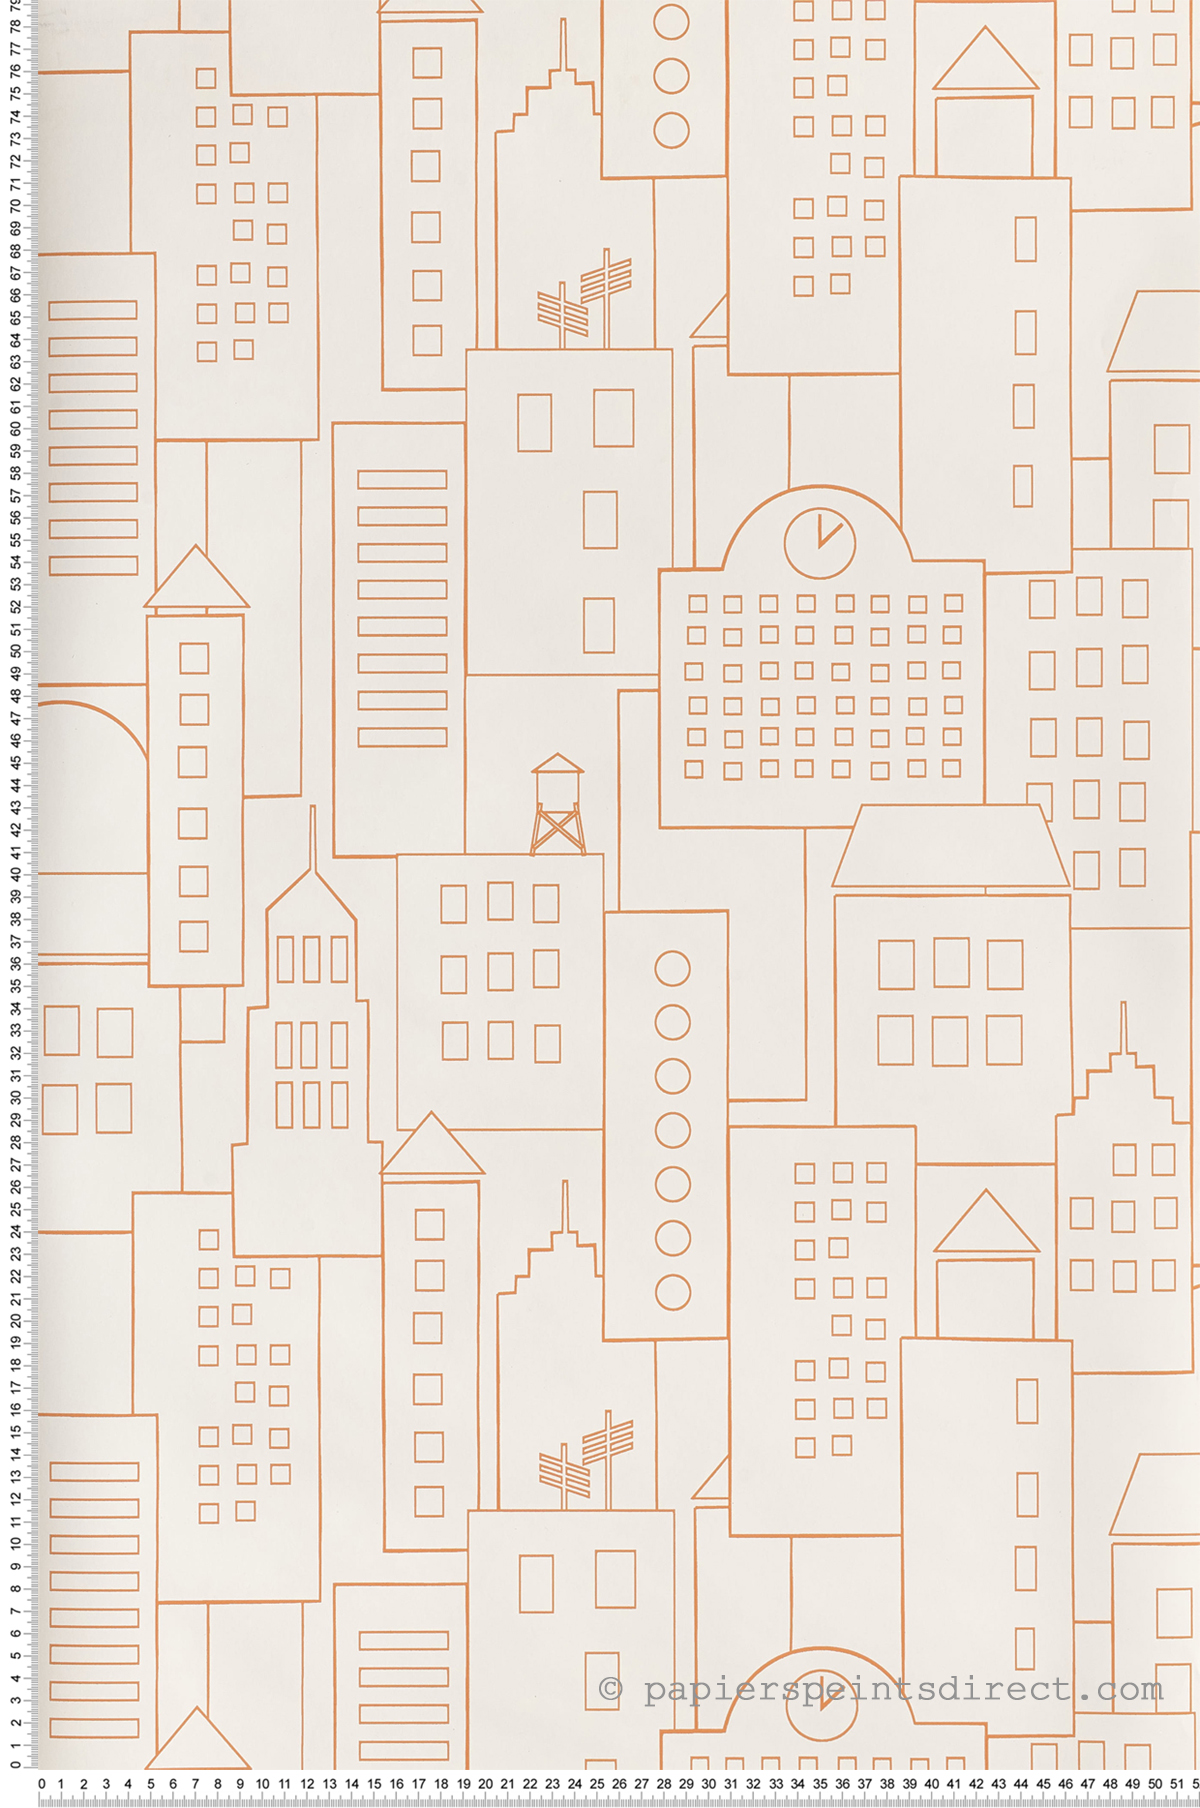 Immeubles orange - Collection Dwell Studio de York by Initiales